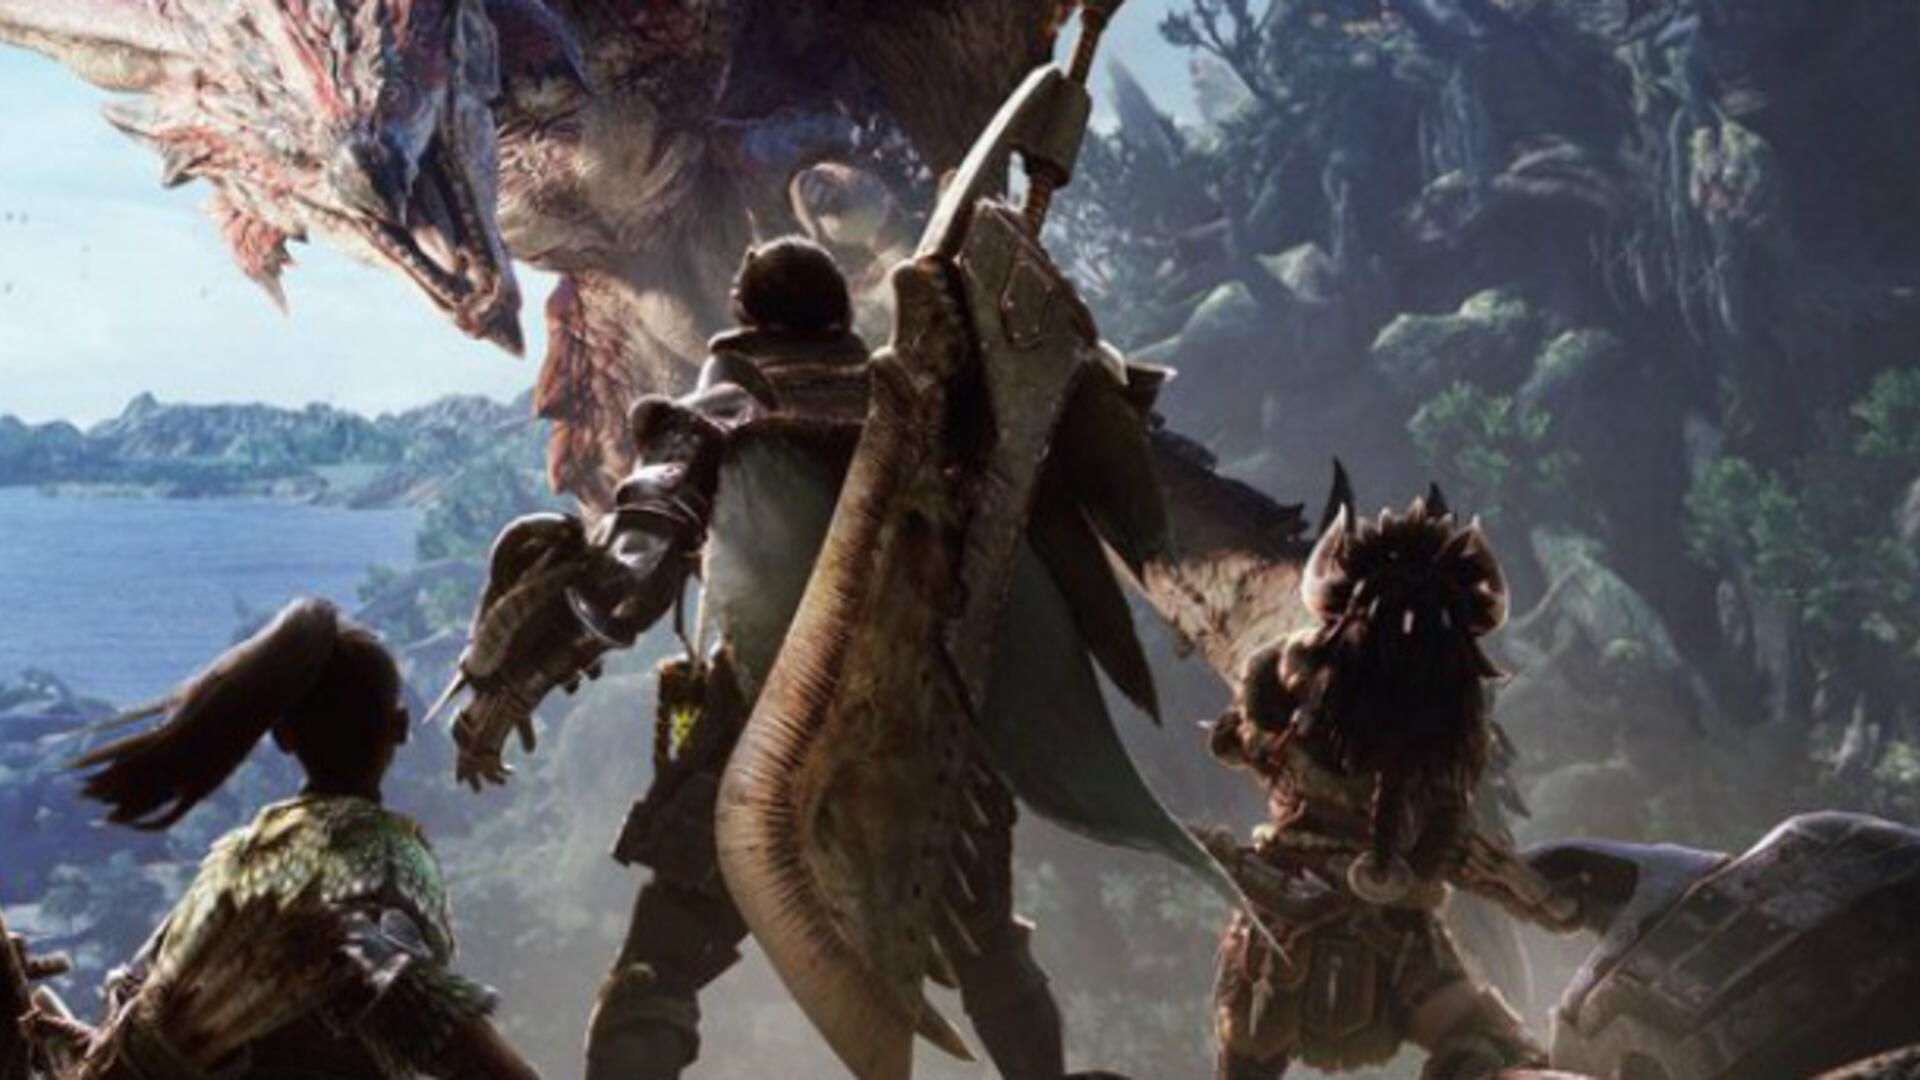 Monster Hunter World is the Biggest New Game Launch on Steam This Year